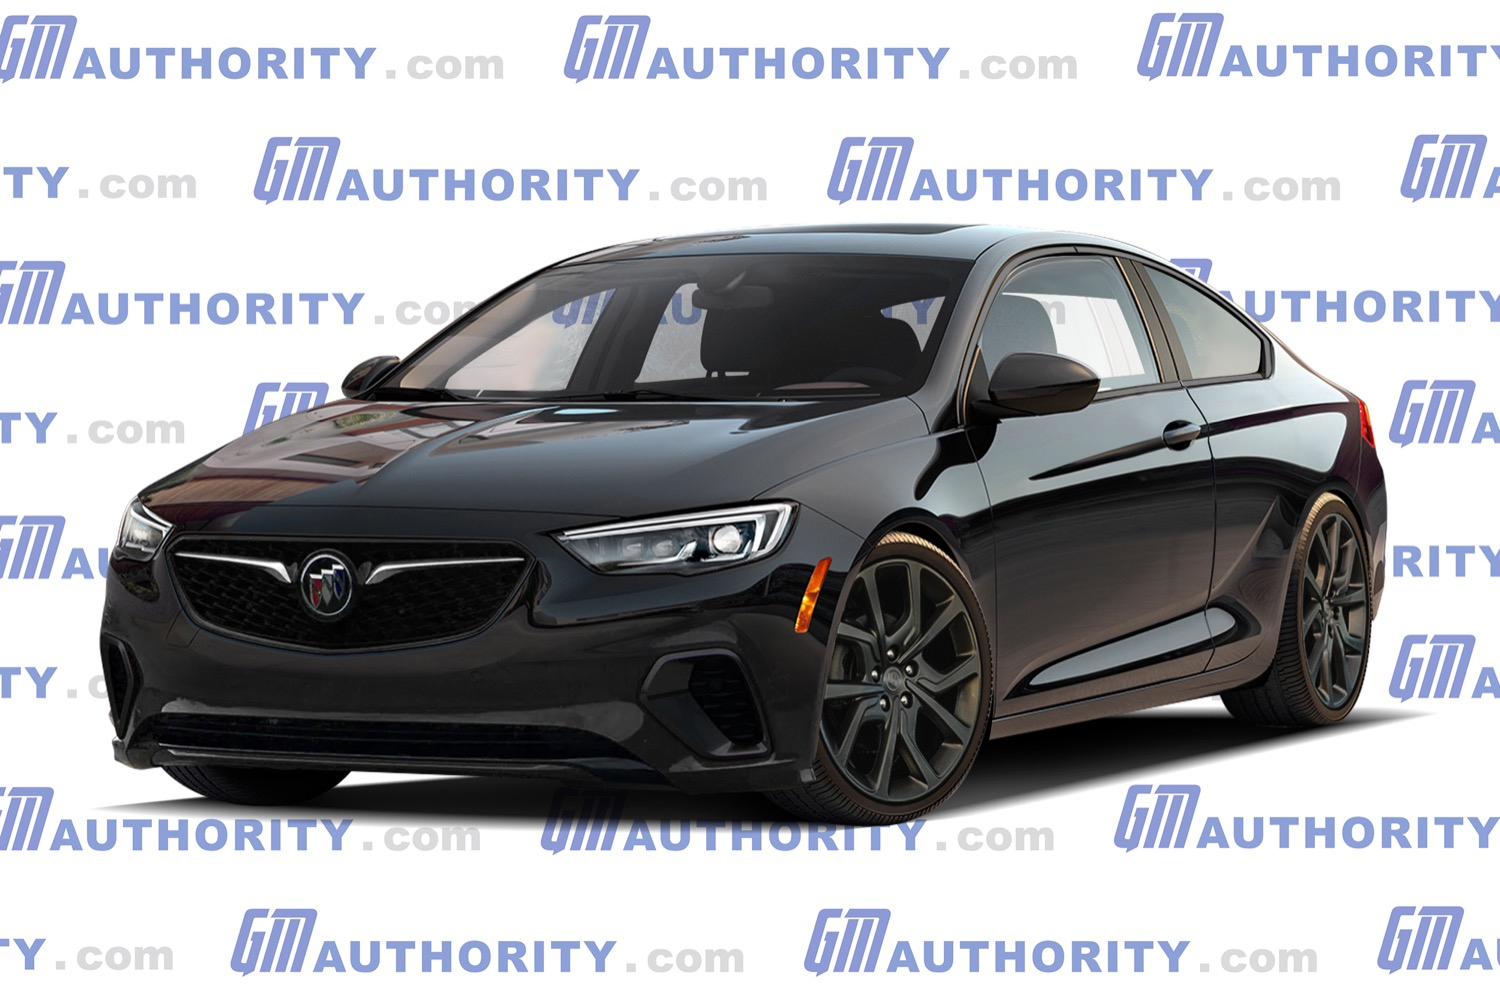 Modern Buick Regal Gnx Rendered | Gm Authority Show Me A 2022 Buick Regal